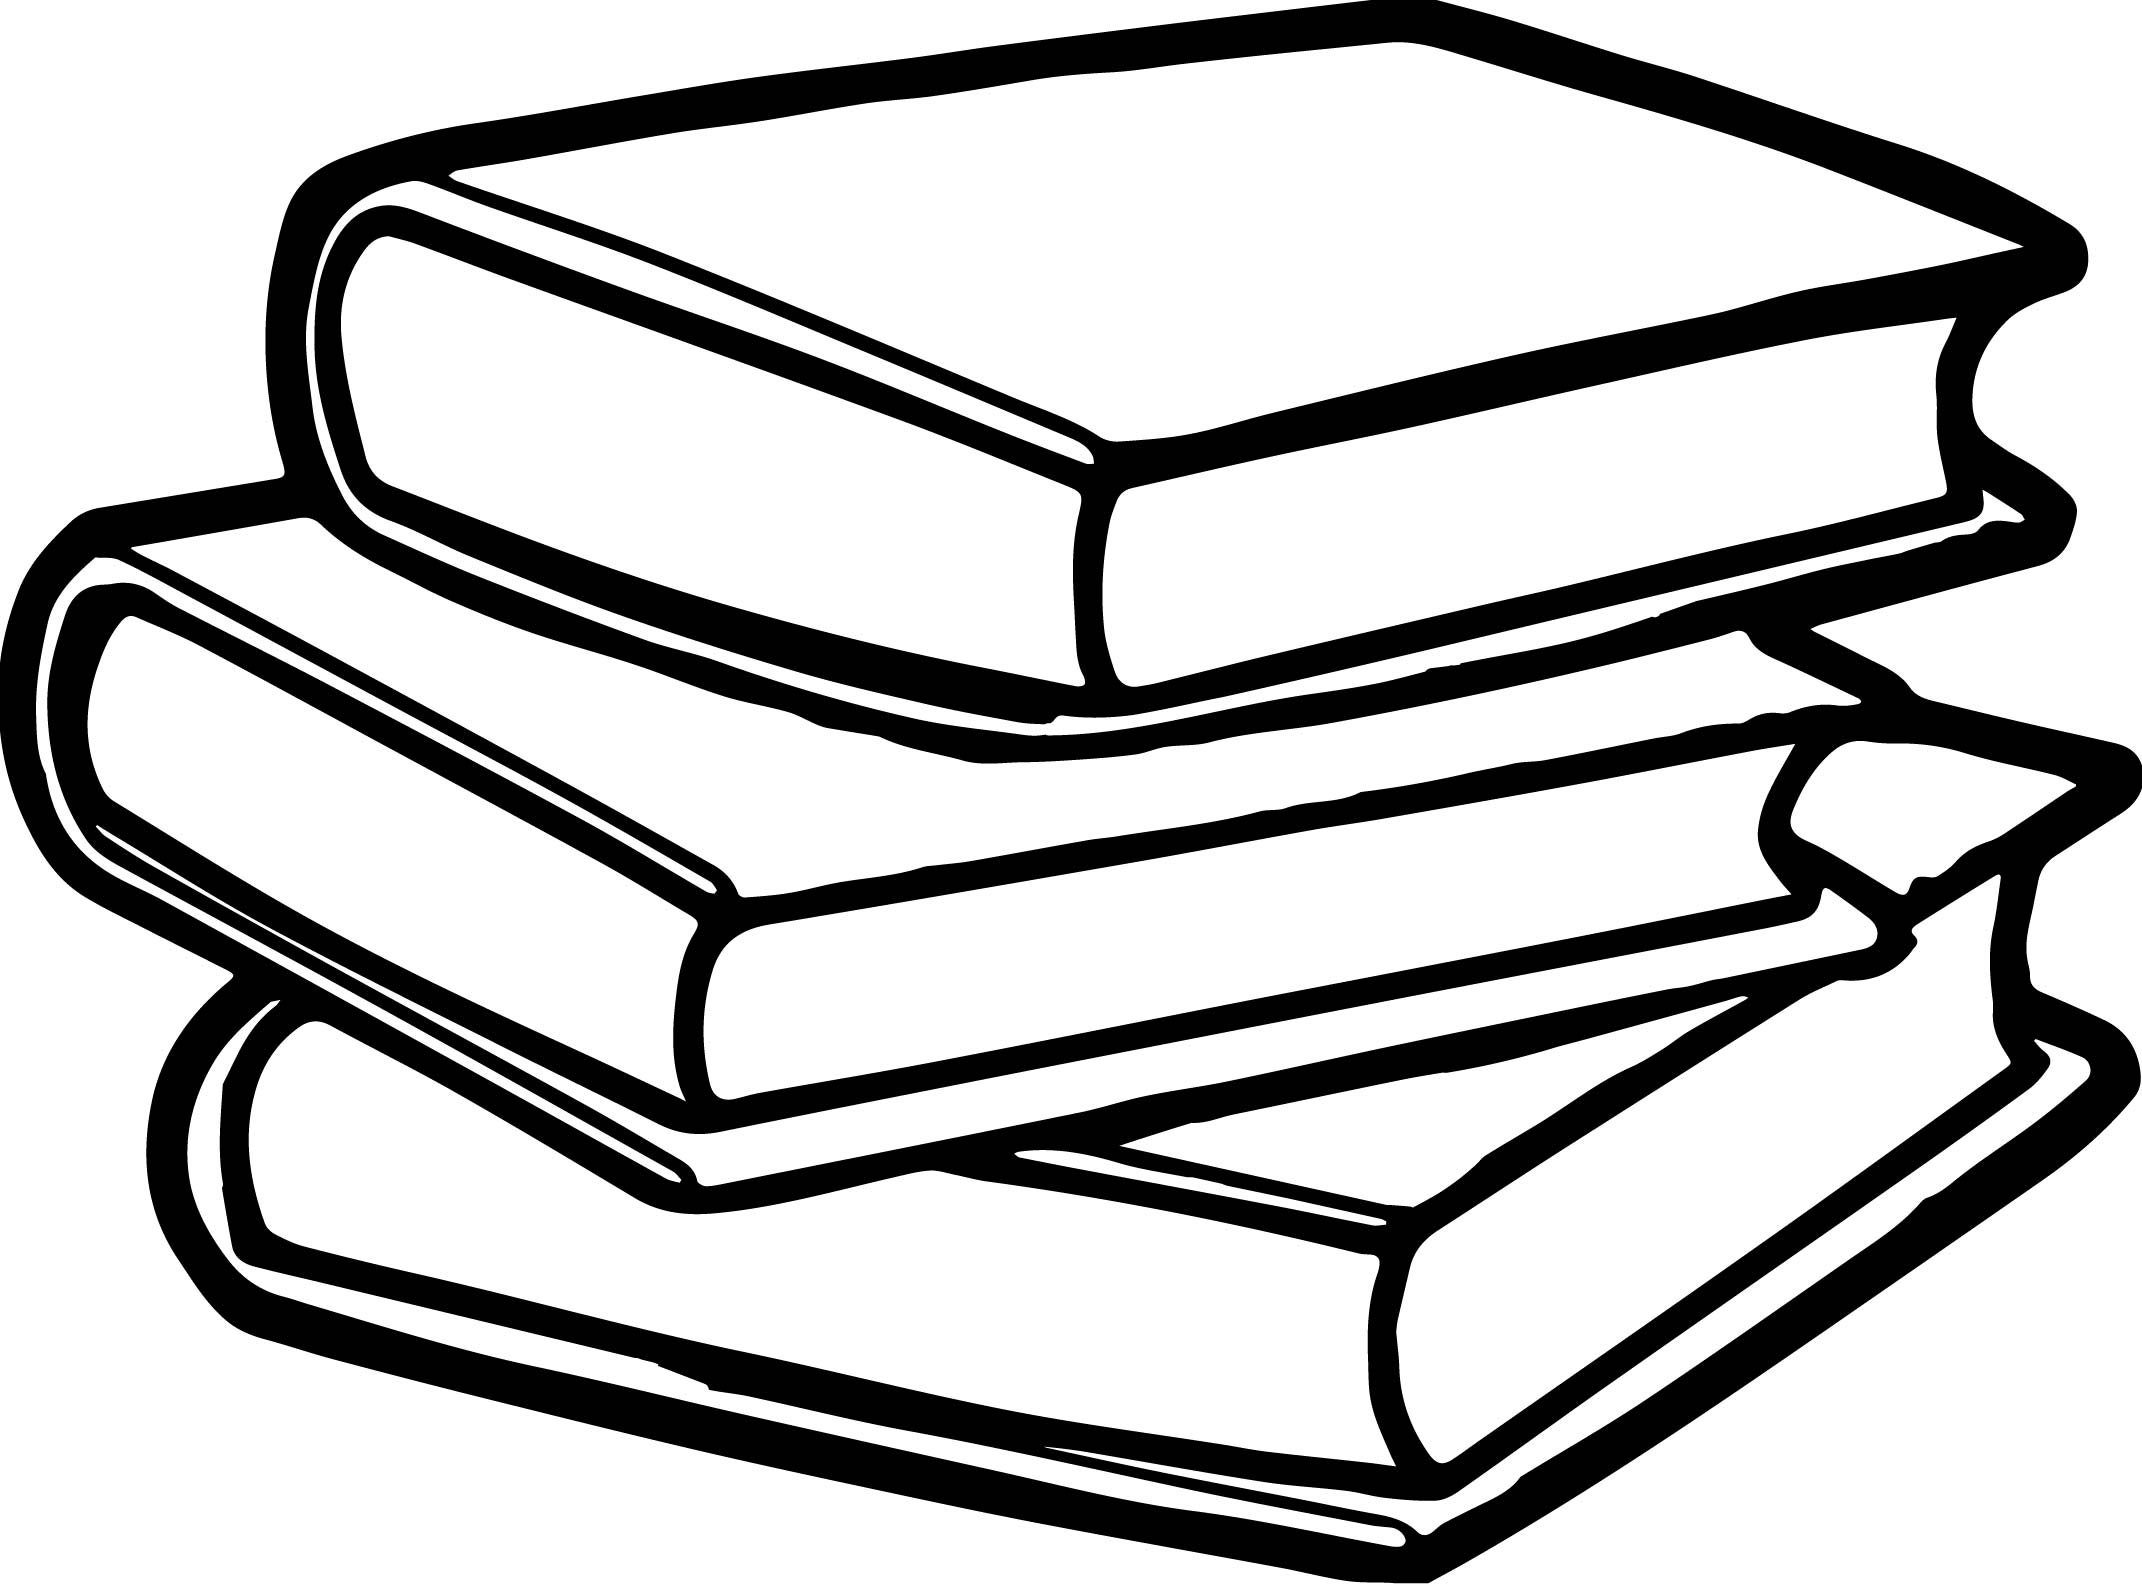 Abc Books Coloring Page Wecoloringpage The Colouring Book